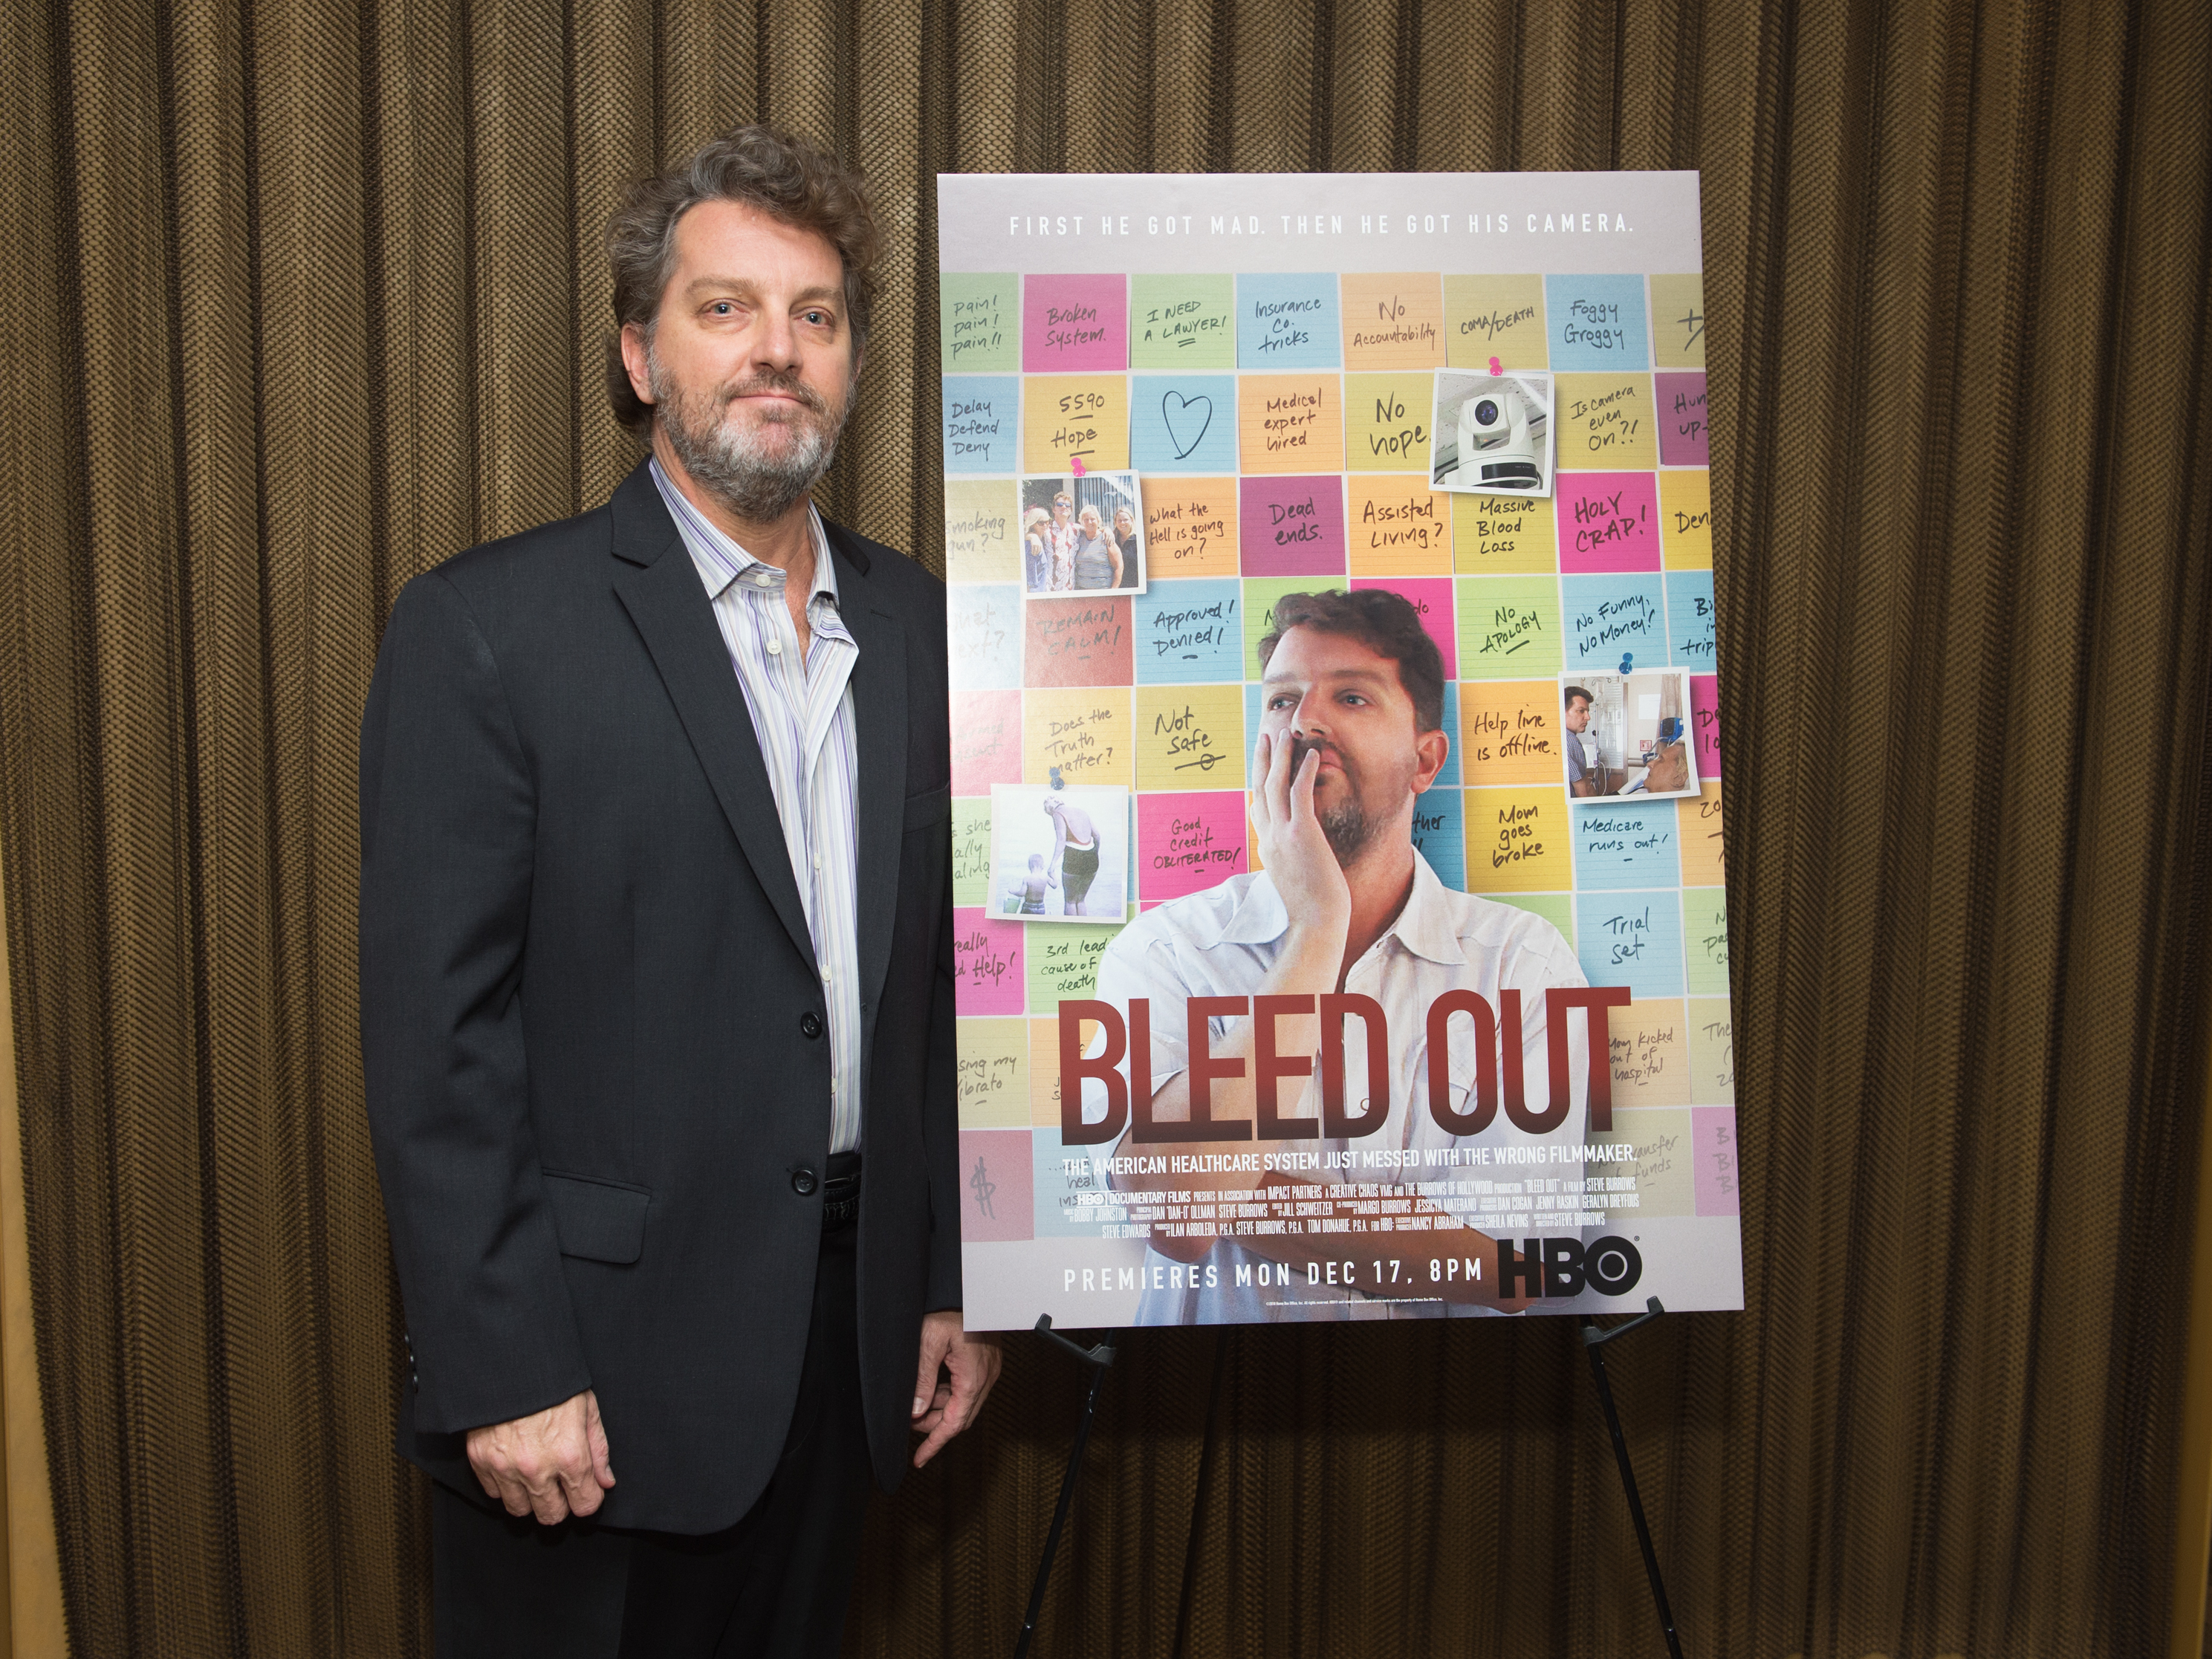 'Bleed Out' Shows How Medical Errors Can Have Life-Changing Consequences